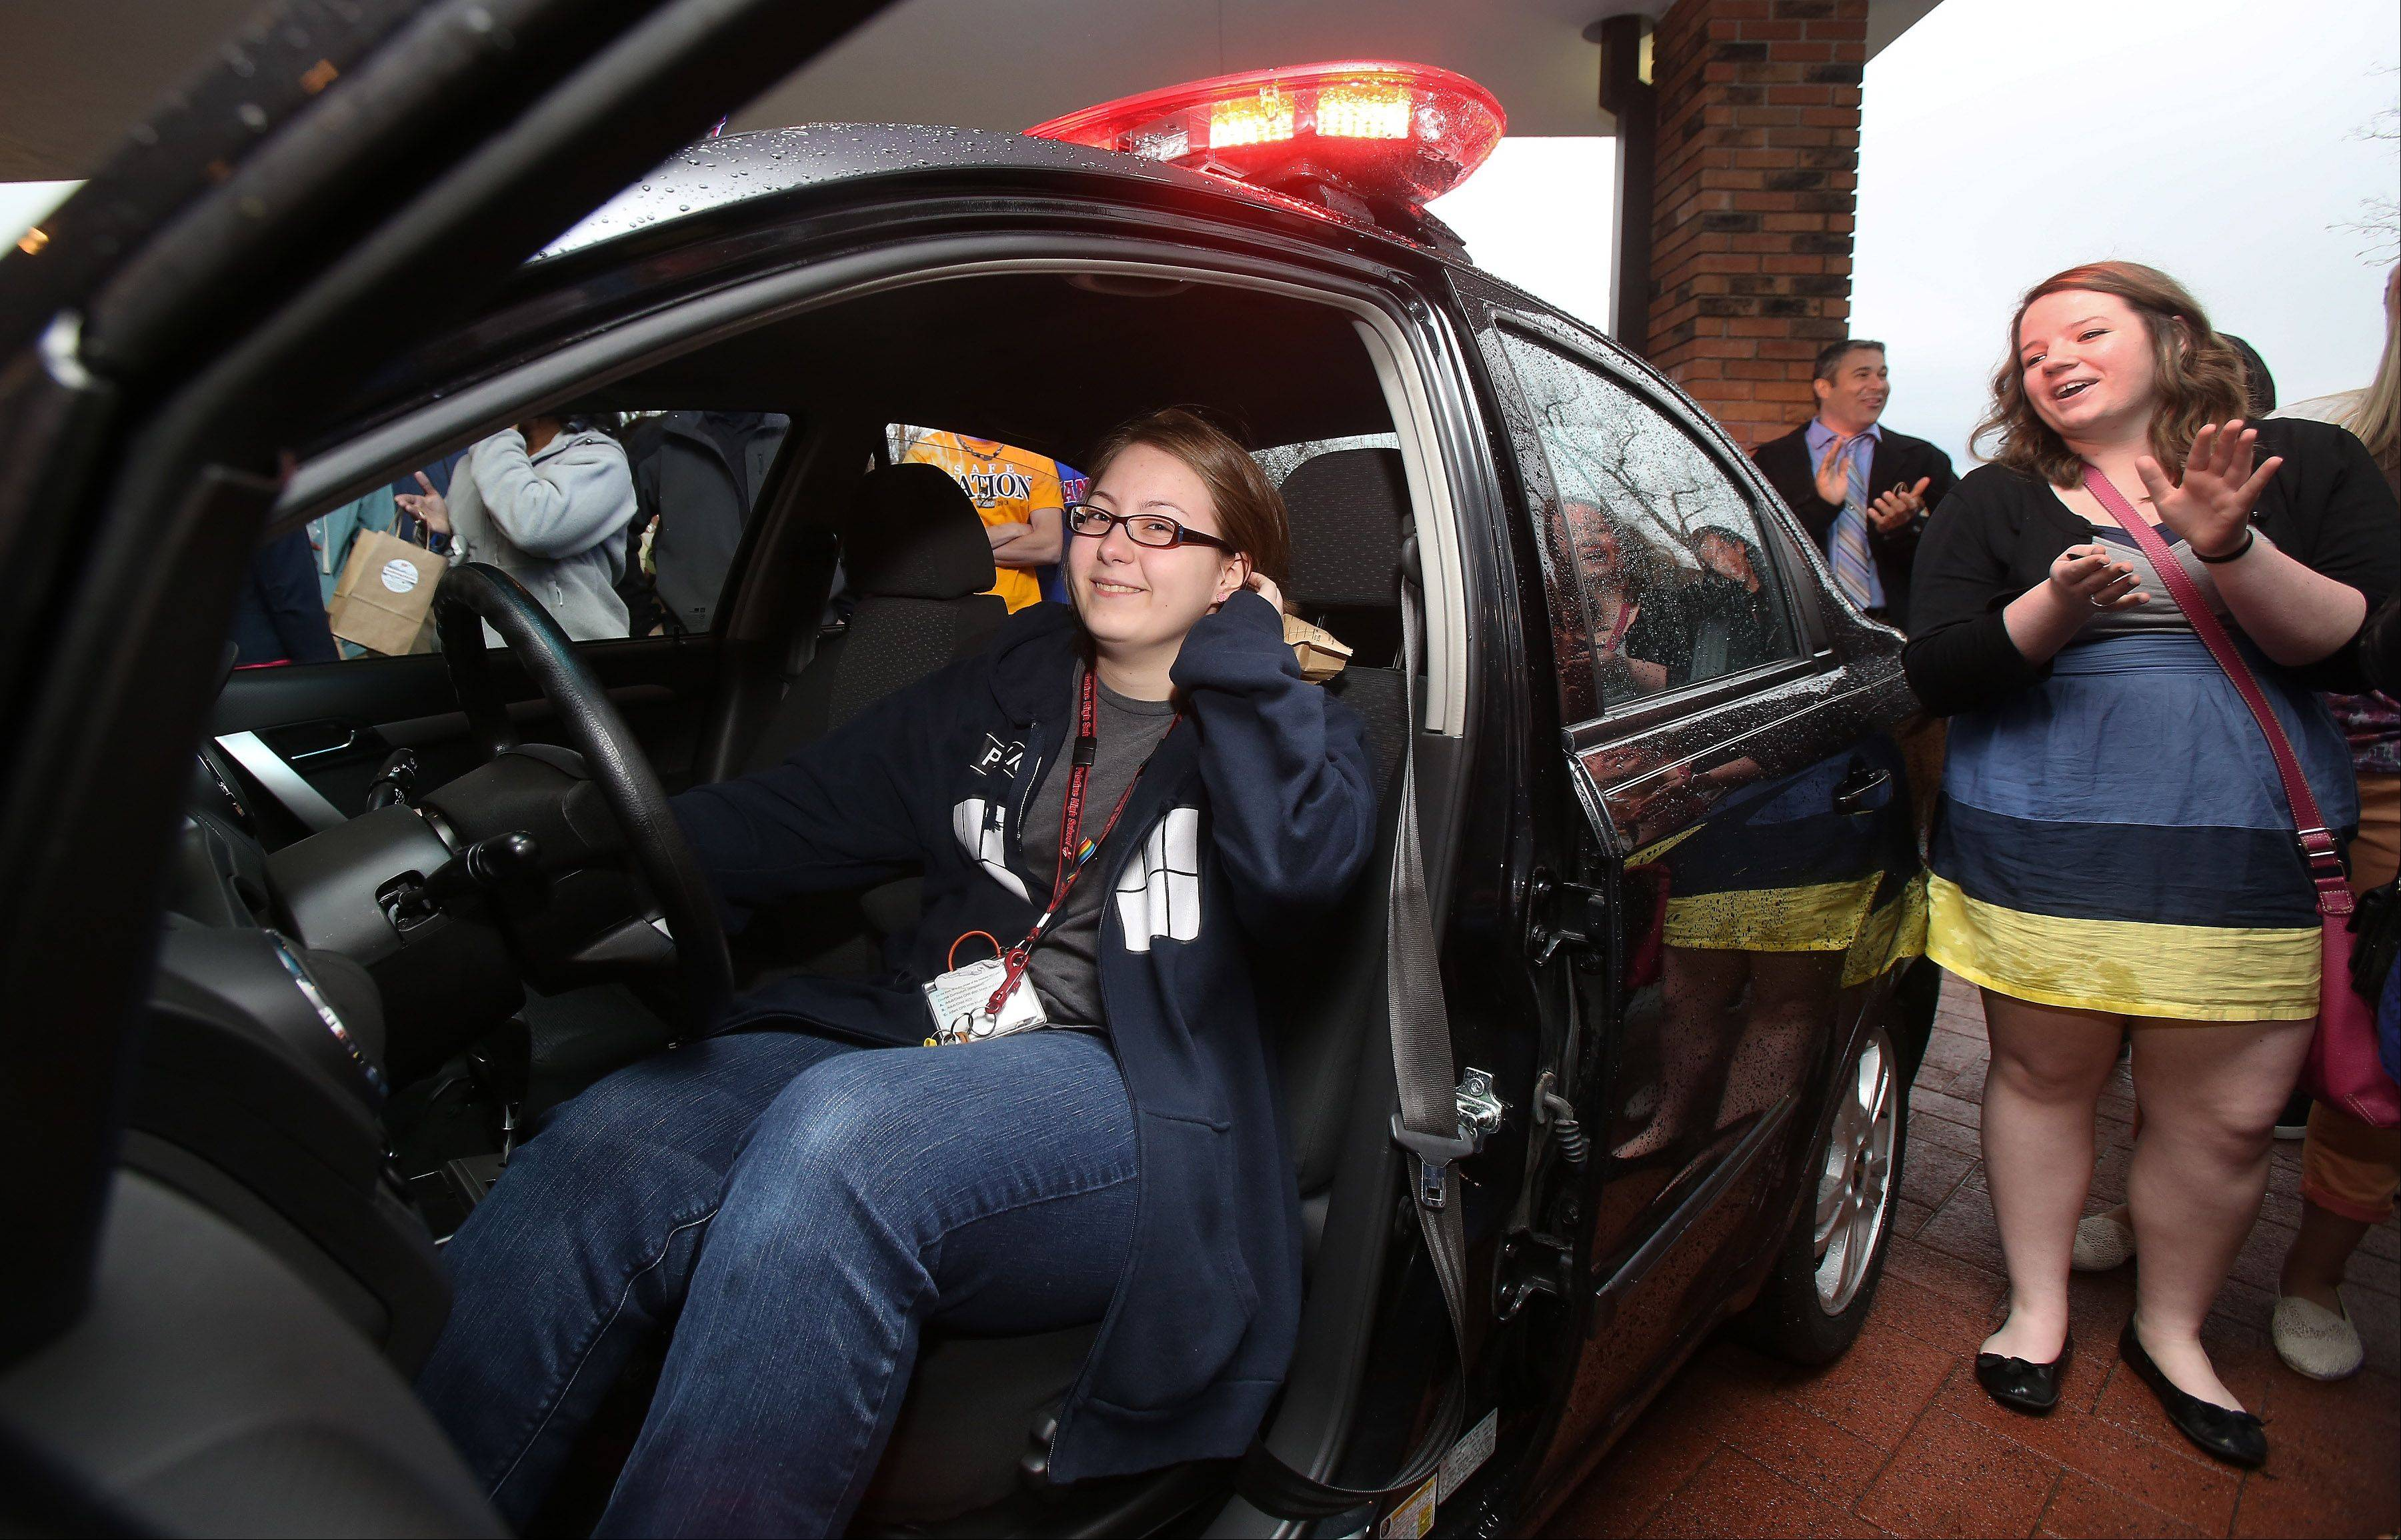 Palatine High School sophomore Emina Mesic turns a key and wins a car during an Operation Click luncheon Wednesday in Kildeer. High school students took a pledge to drive safe for a chance to win a car. Mesic was the last student to try a key for the car.